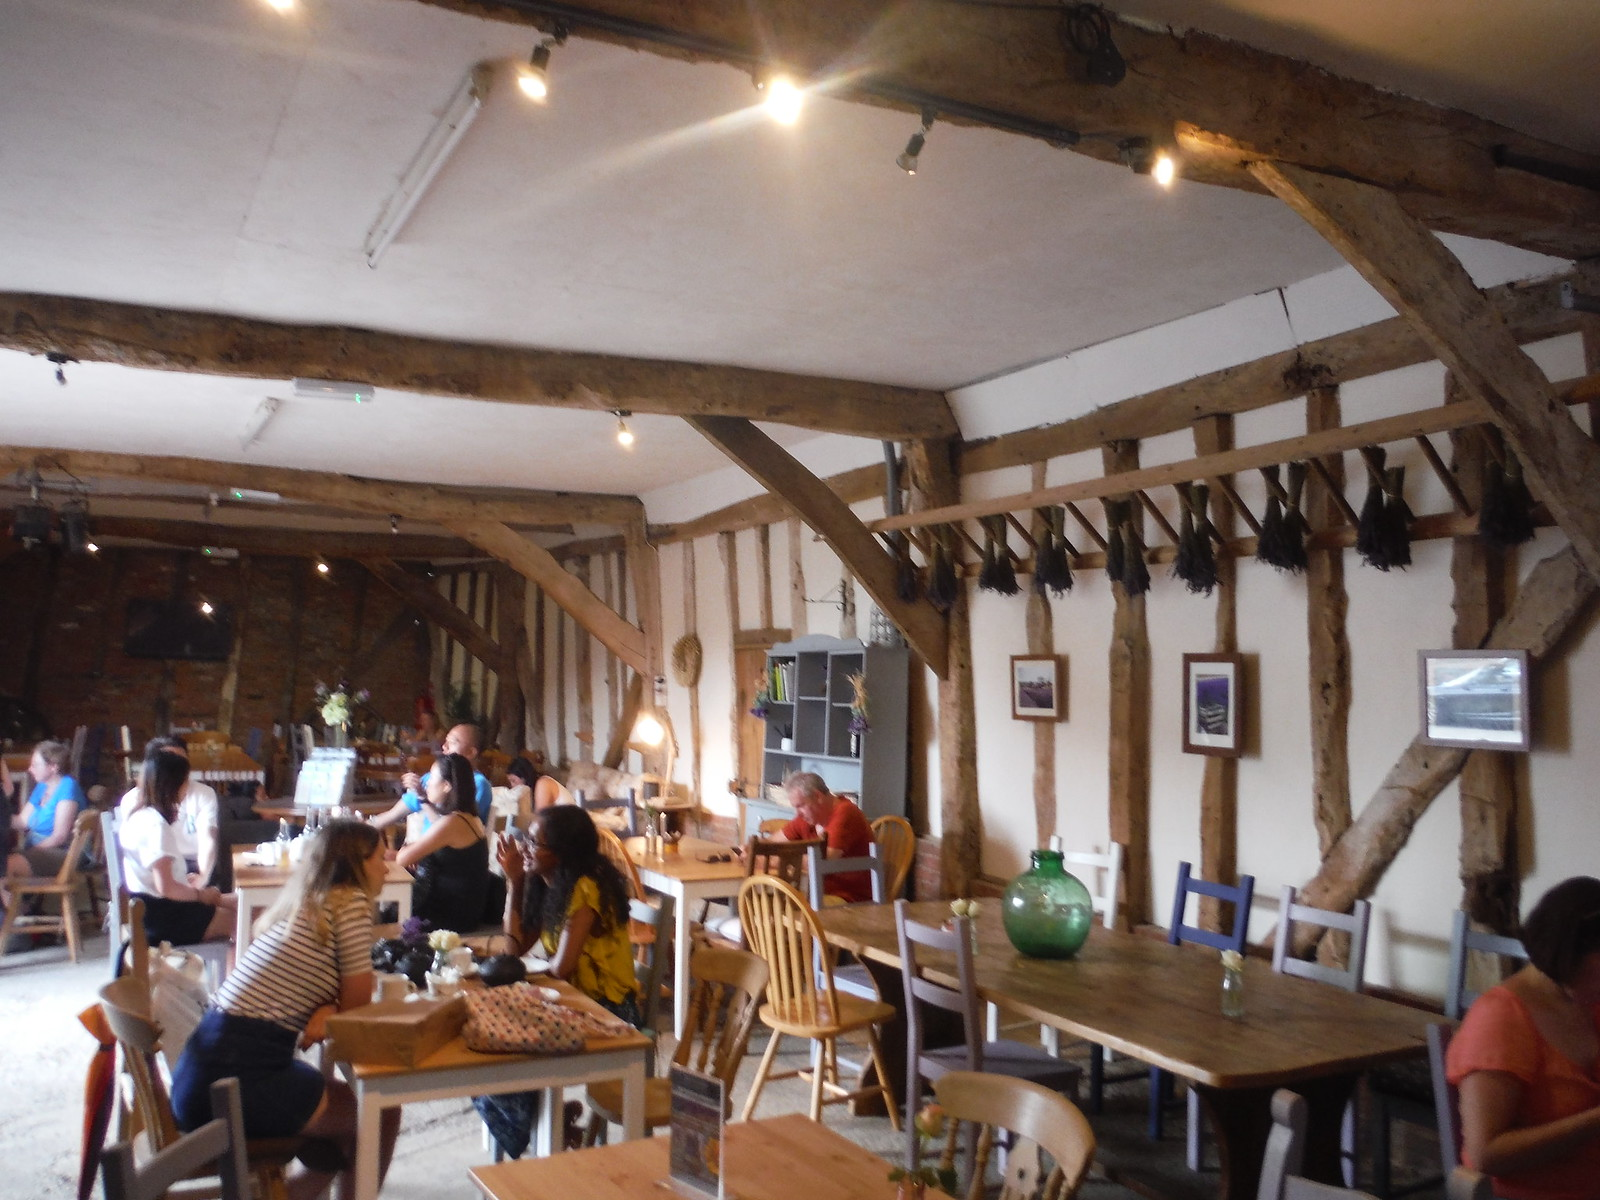 Barn Café at Hitchin Lavender (Cadwell Farm) SWC Walk 233 - Arlesey to Letchworth Garden City